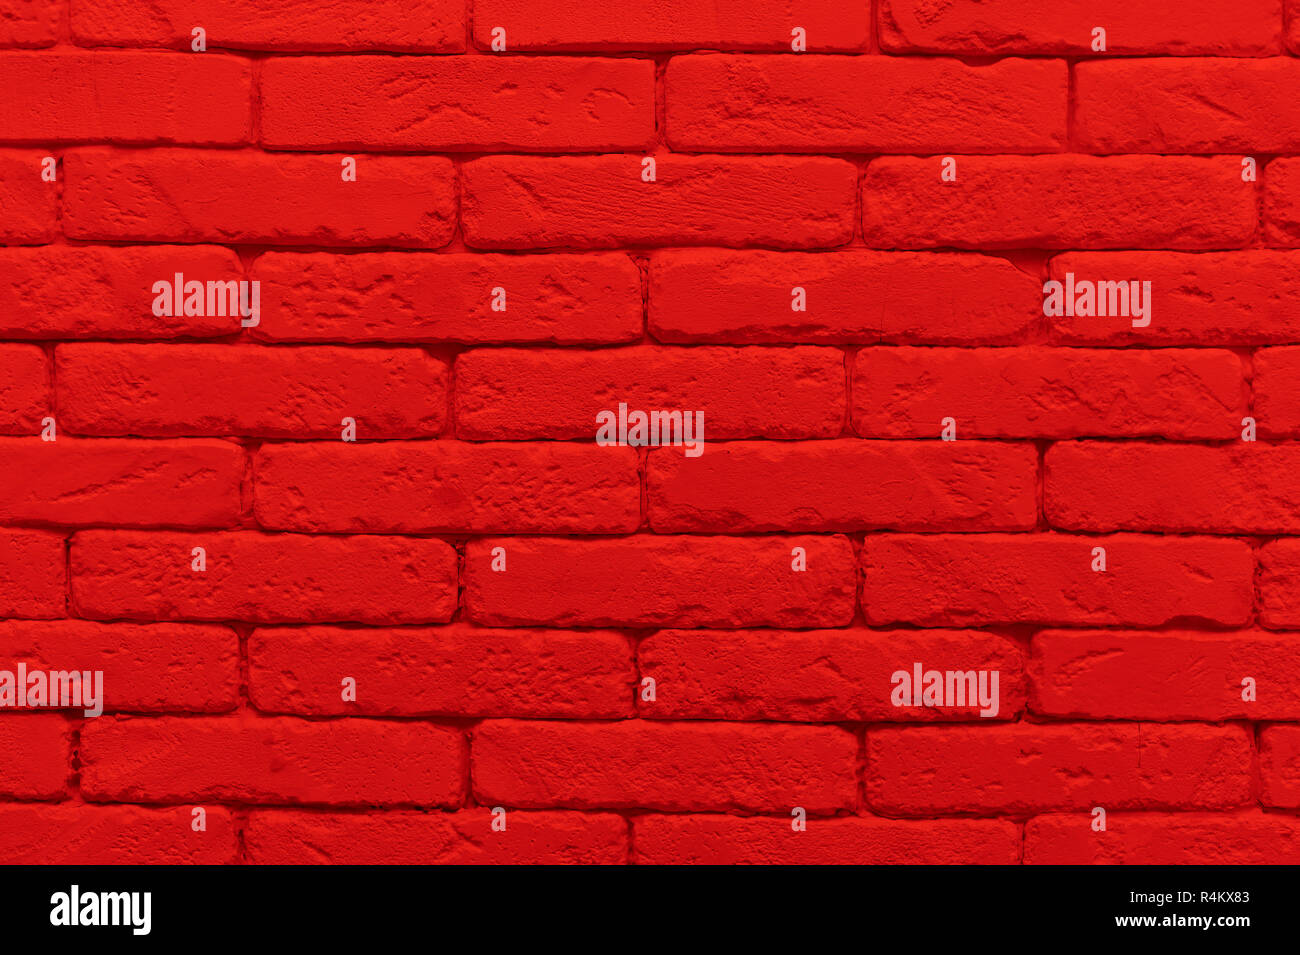 red brick wall painted at saturated scarlet colour  closeup